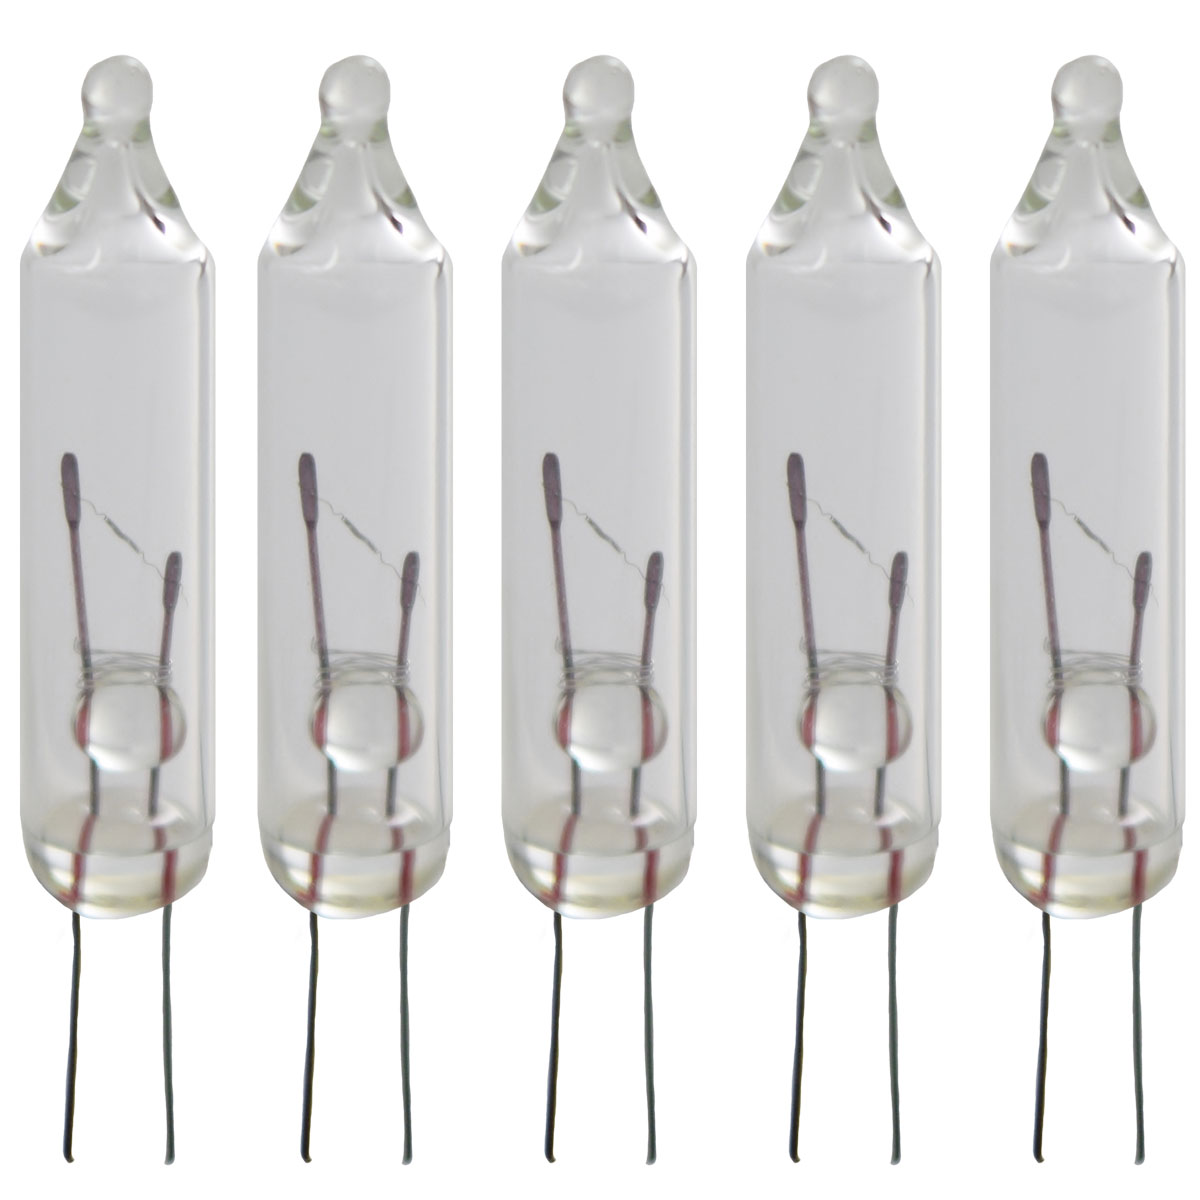 String Lights With Replacement Bulbs : Clear Replacement String Light Bulbs - 5 Bulbs